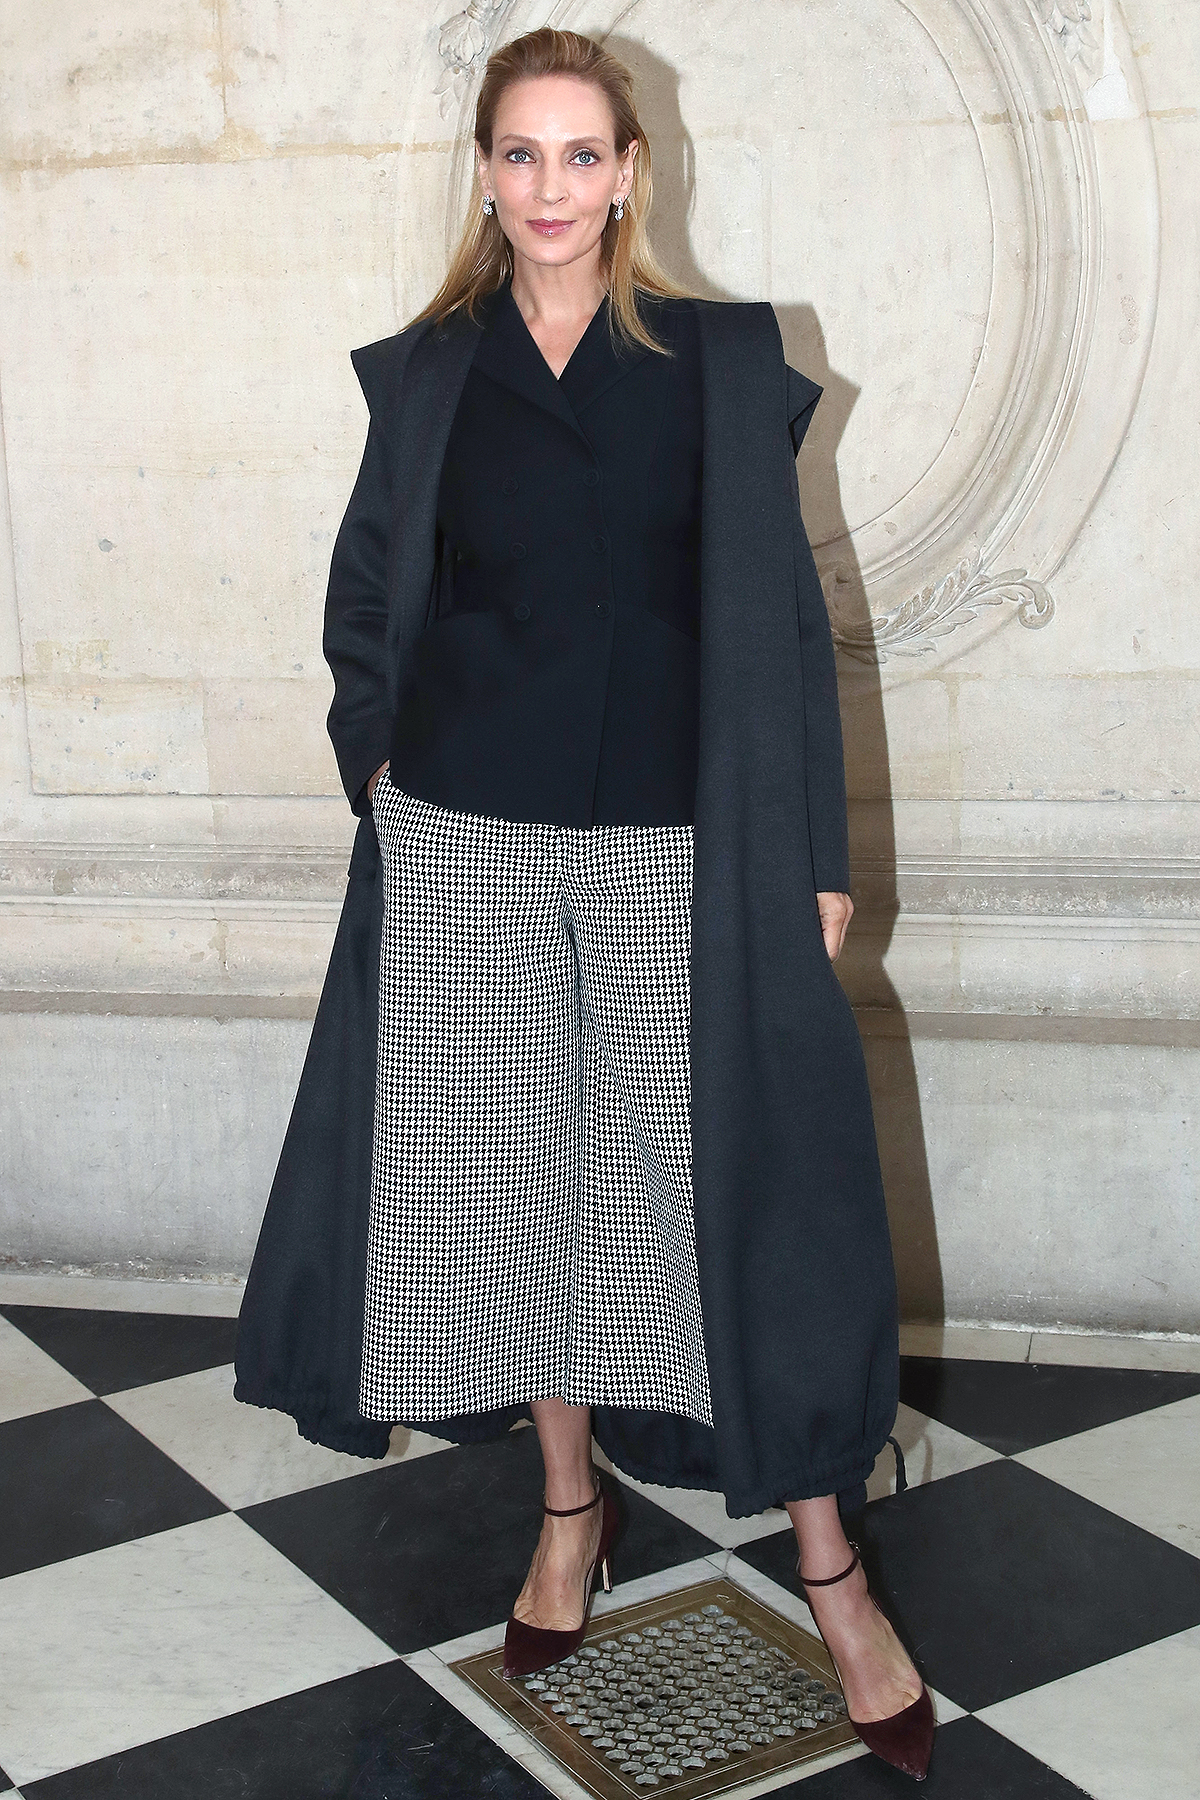 Uma Thurman attends the Dior Haute Couture Spring/Summer 2020 show as part of Paris Fashion Week on January 20, 2020